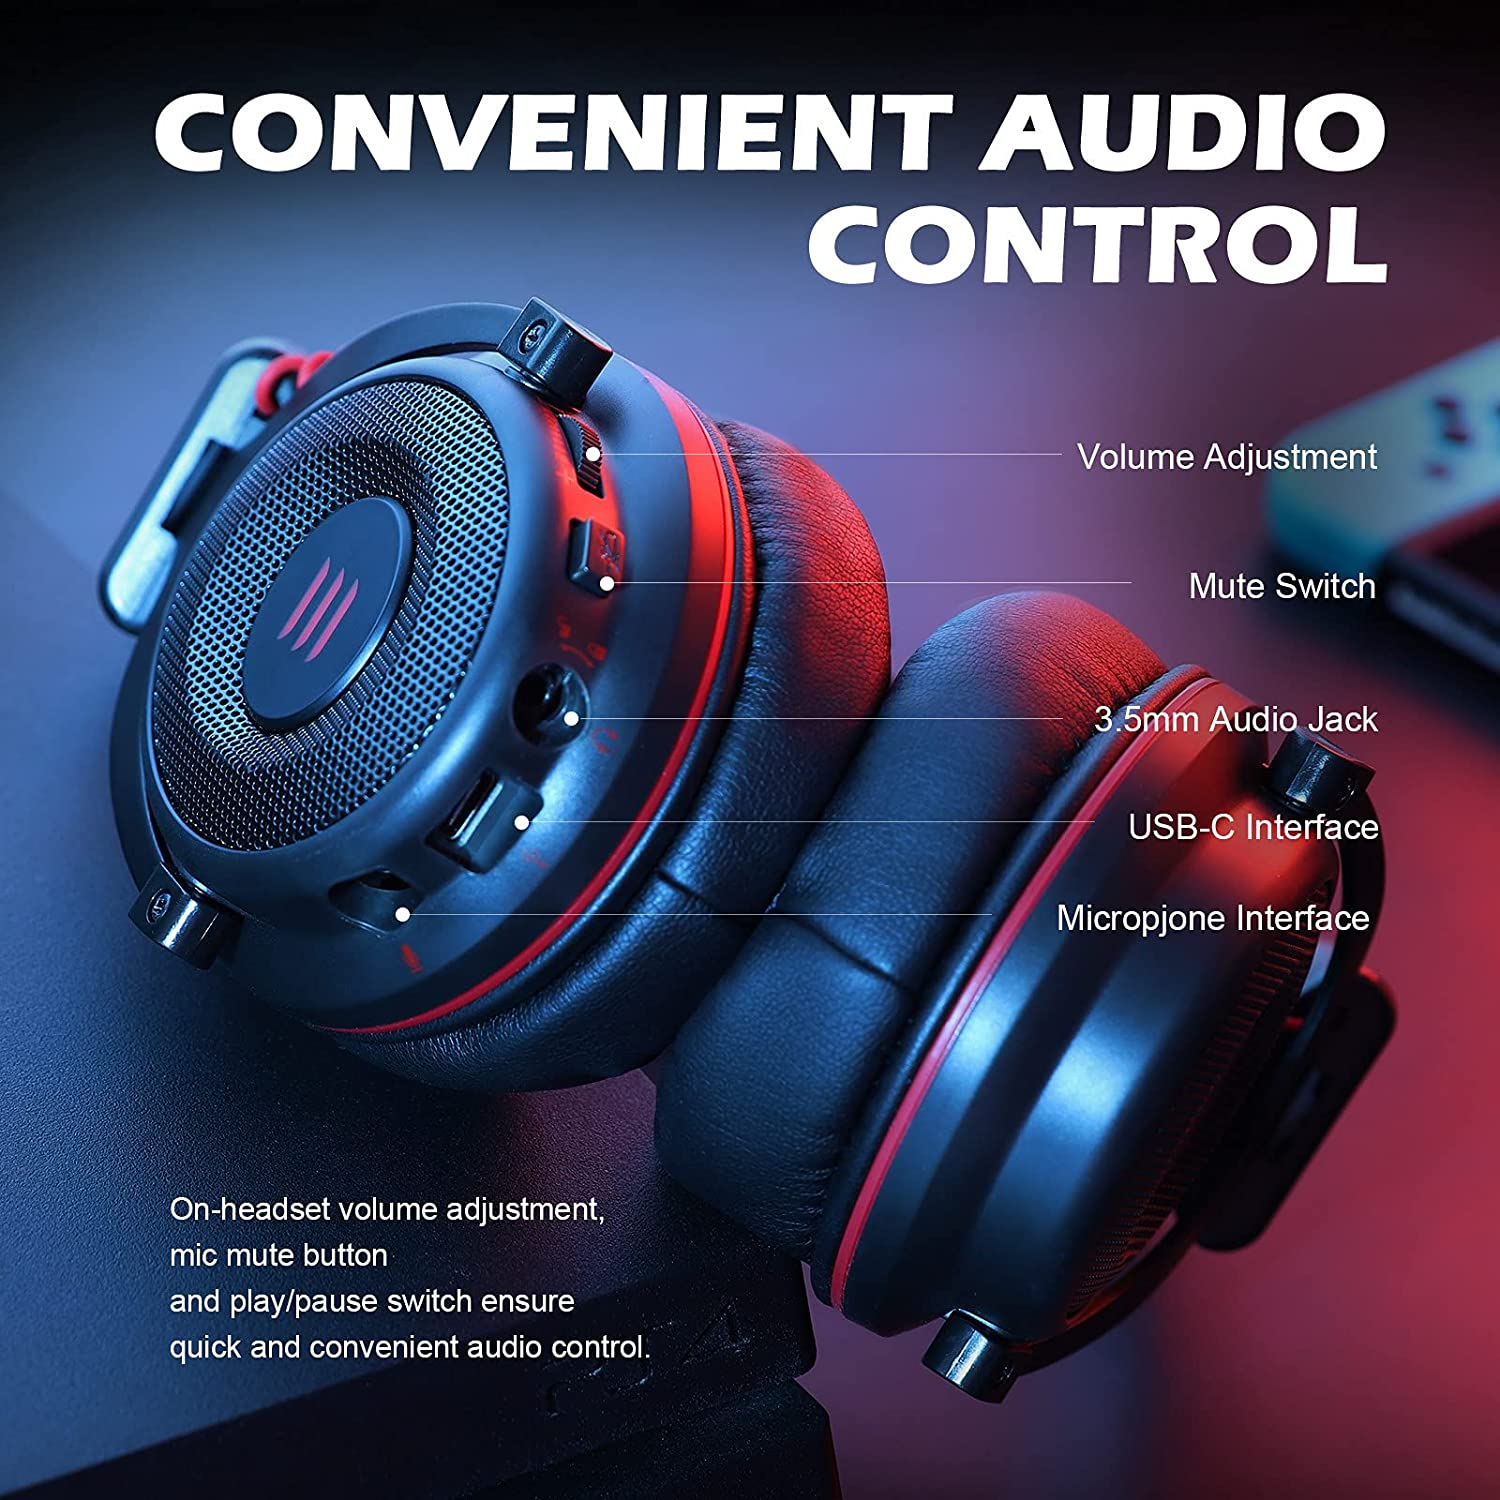 EKSA E900 USB Gaming Headset for PC - PS4 Headset with Detachable Noise Cancelling Microphone - 7.1 Surround Sound - Gaming Wired Headphones Compatible with PS4, PS5, PC, Xbox One, Computer, Laptop